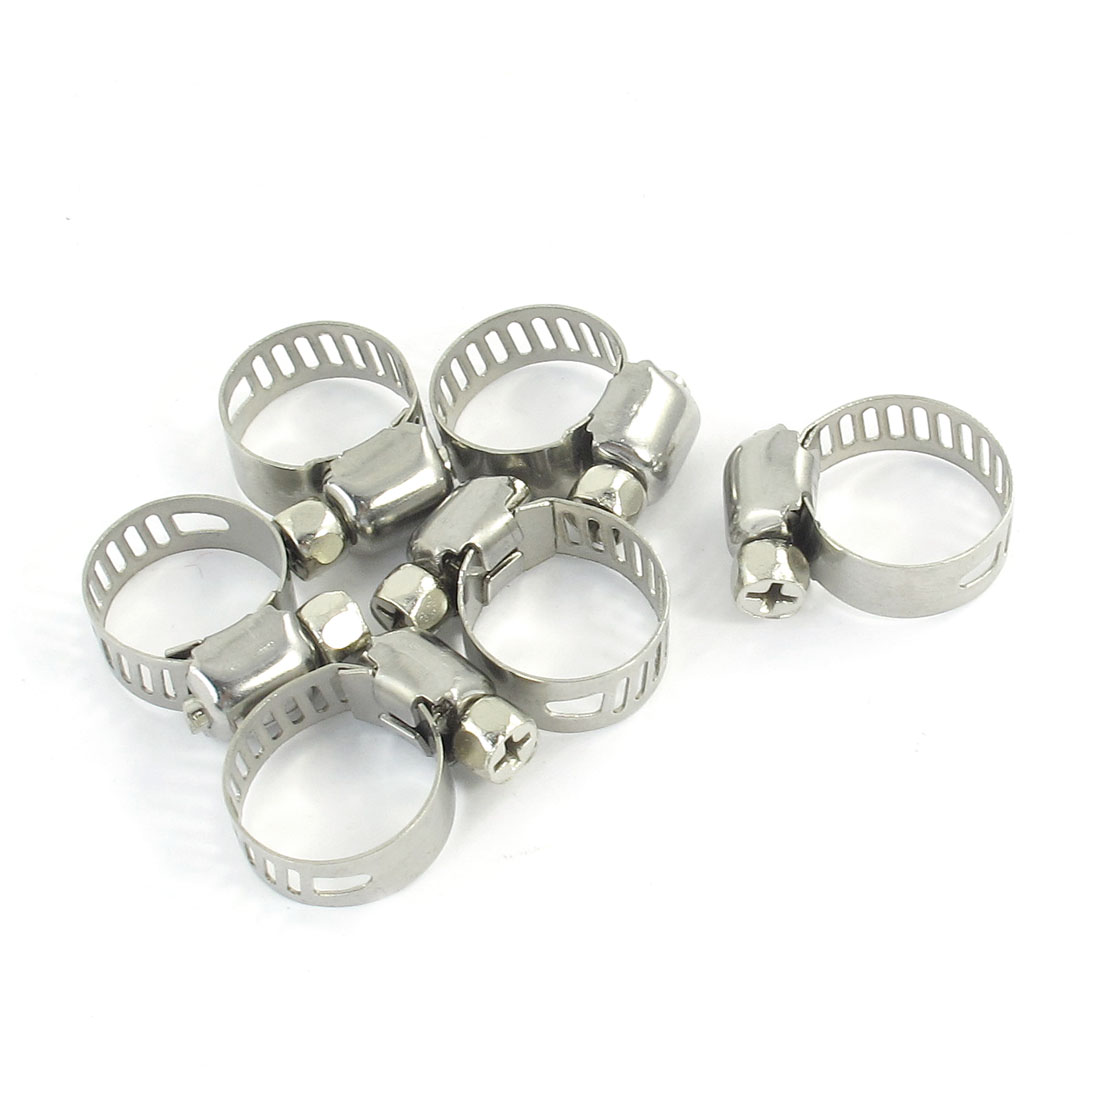 Silver Tone Metallic 9mm to 16mm Pipes Hose Clamps Clips 6 Pcs